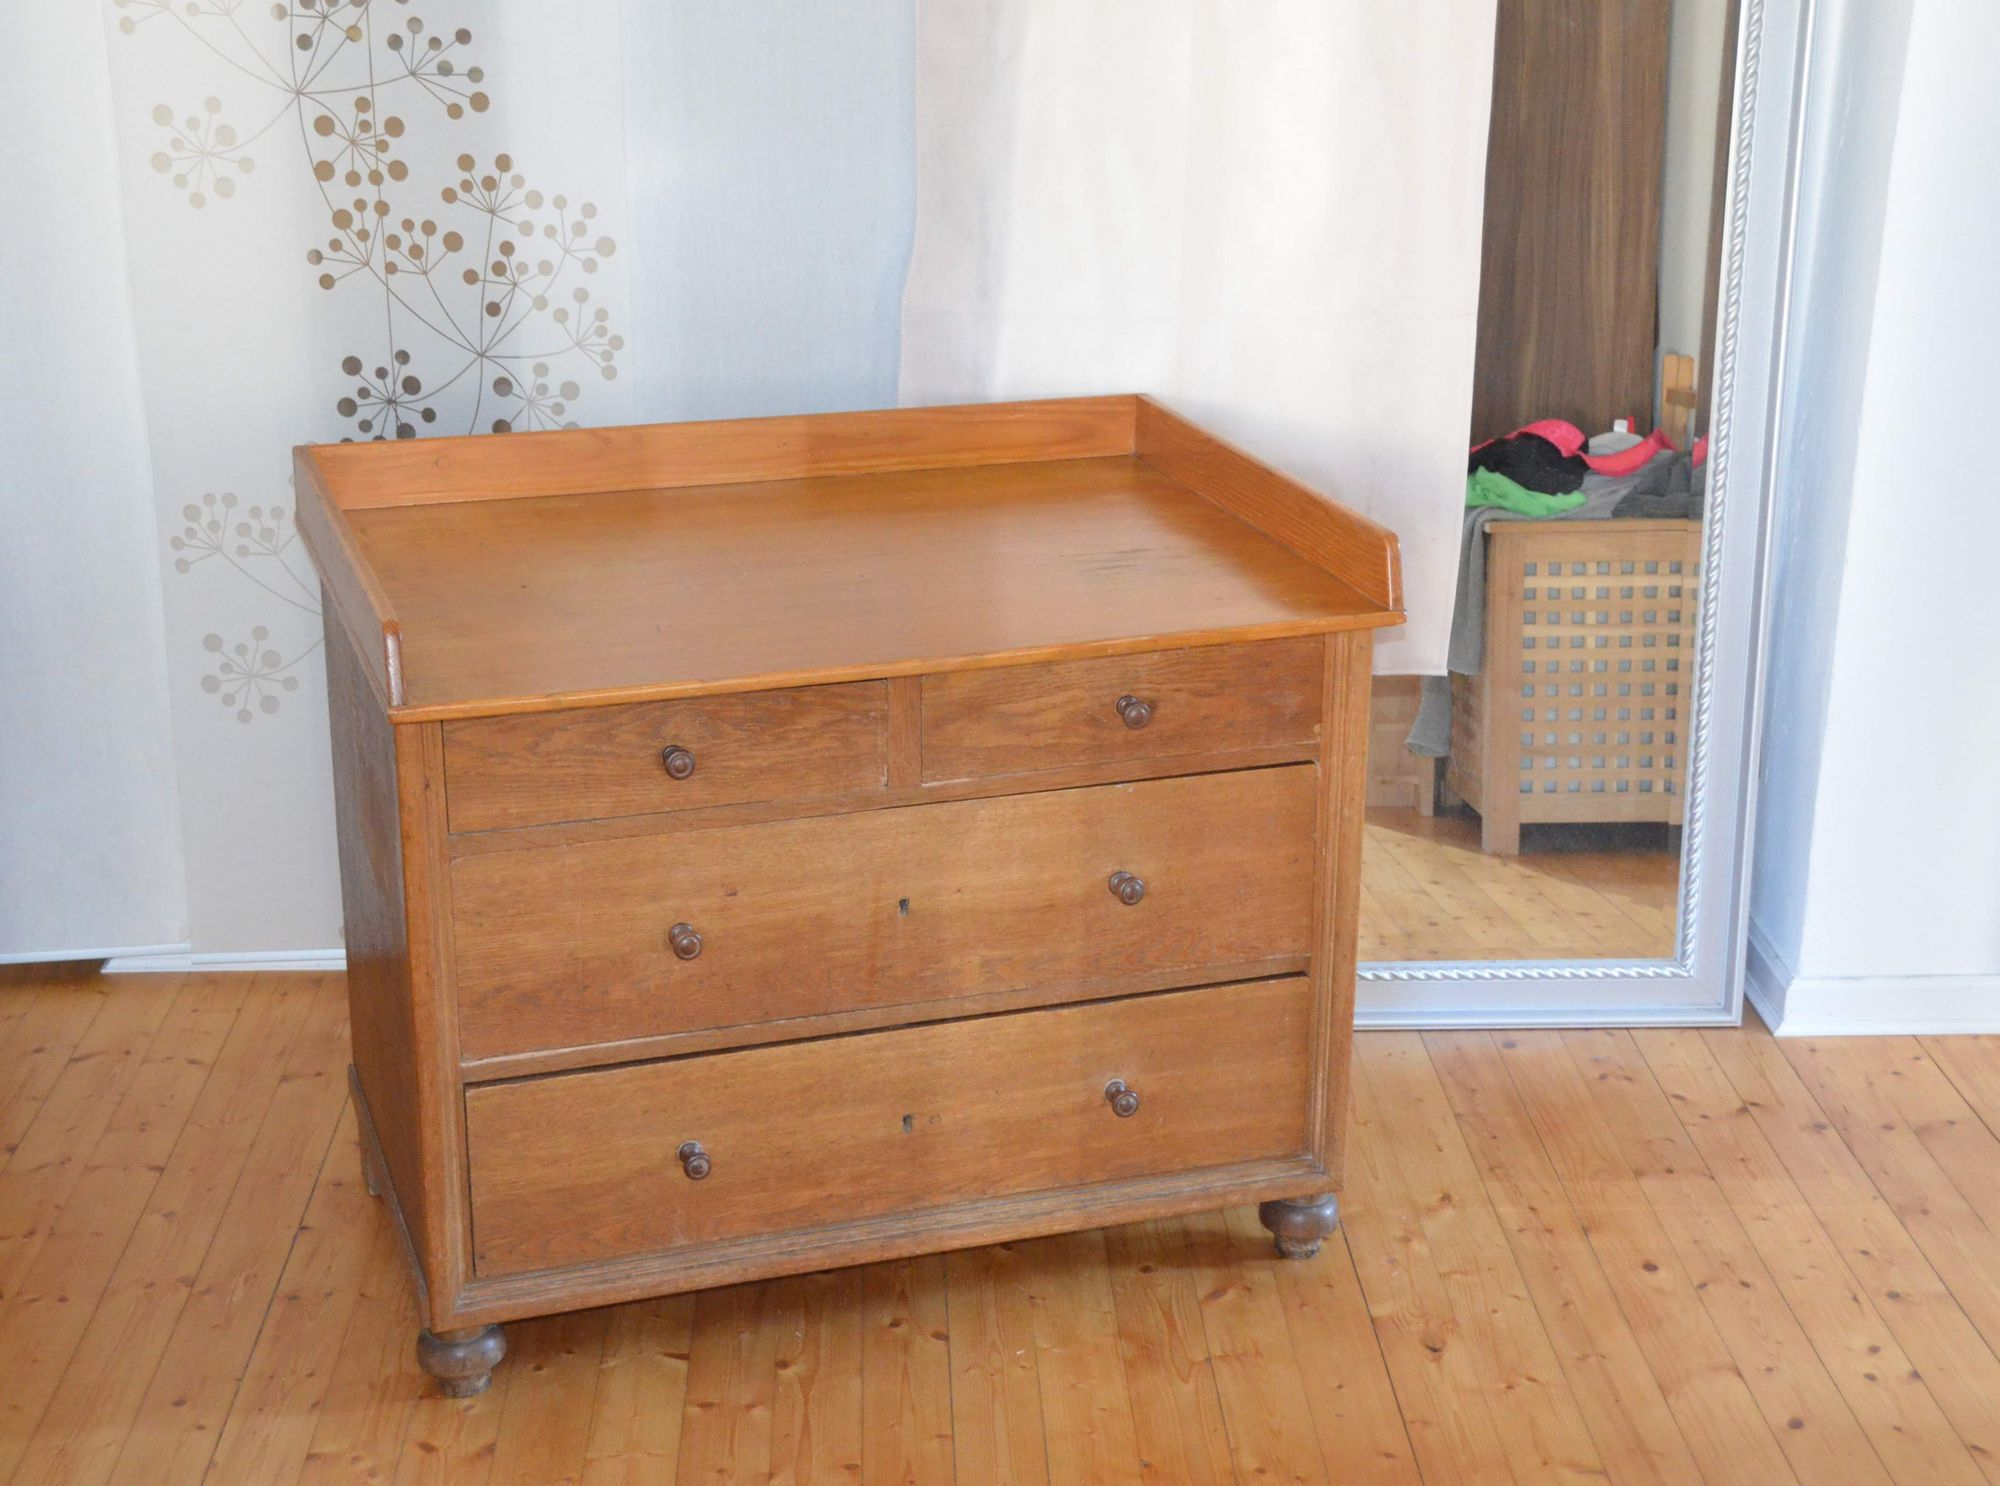 A new life for a changing table